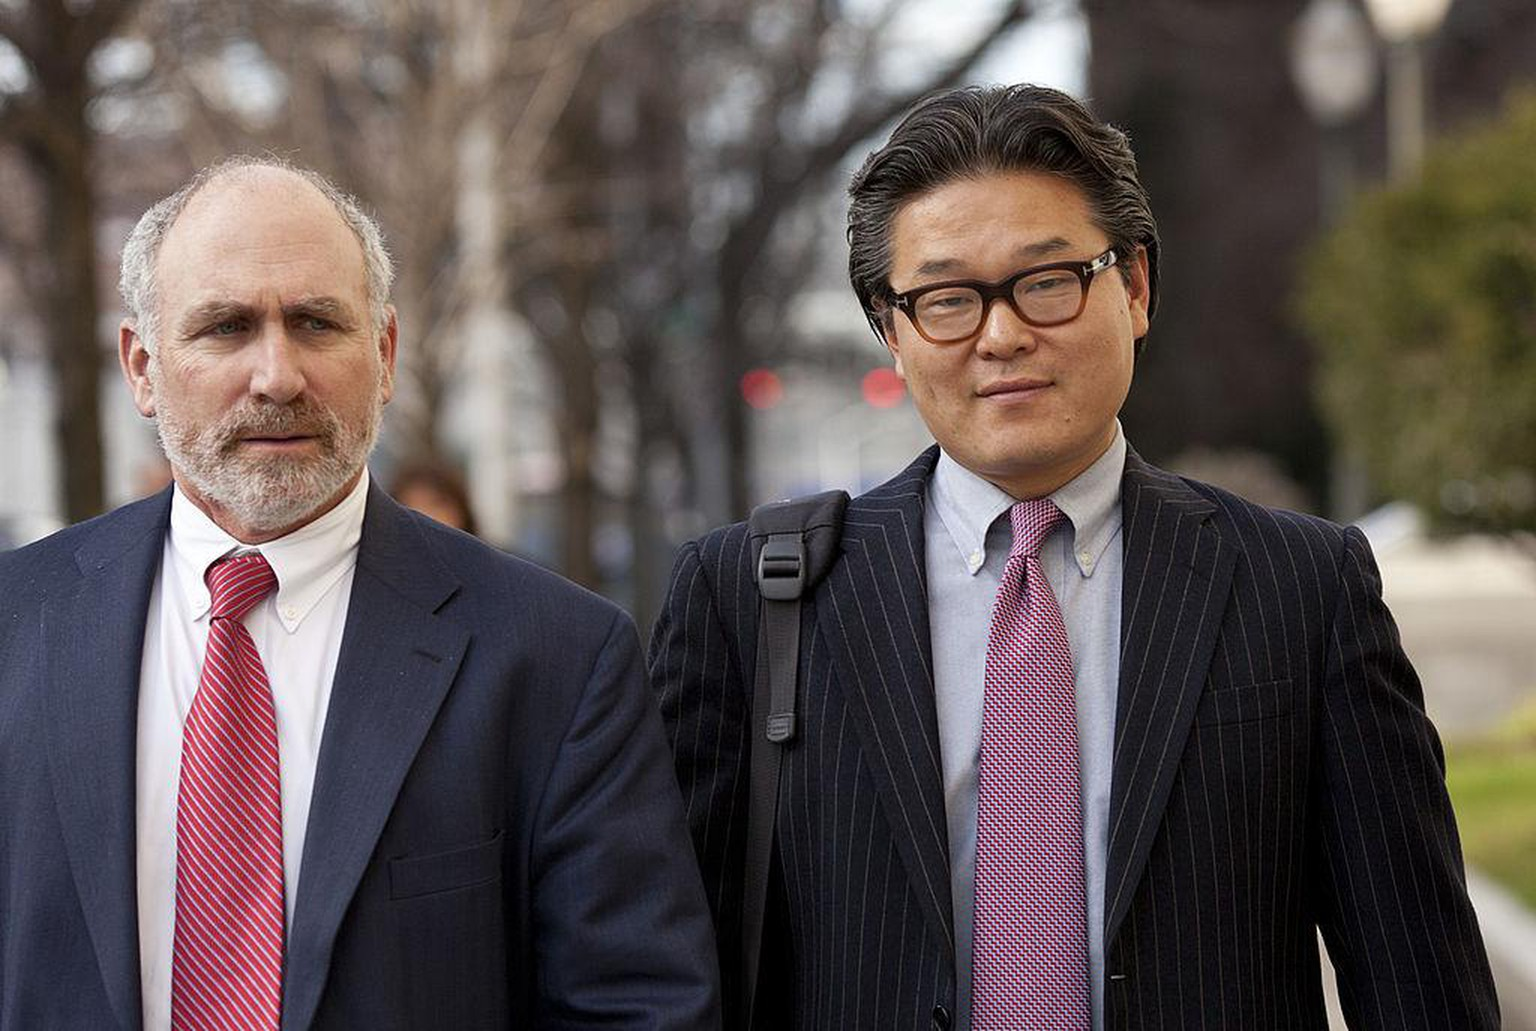 Bill Hwang, founder of of Tiger Asia Management LLC, right, exits federal court with his attorney Lawrence Lustberg in Newark, New Jersey, U.S., on Wednesday, Dec. 12, 2012. Tiger Asia Management LLC, the New York-based hedge fund run by Hwang, pleaded guilty to a wire fraud charge and will forfeit $16.3 million in a U.S. insider-trading case. Photographer: Emile Wamsteker/Bloomberg via Getty Images